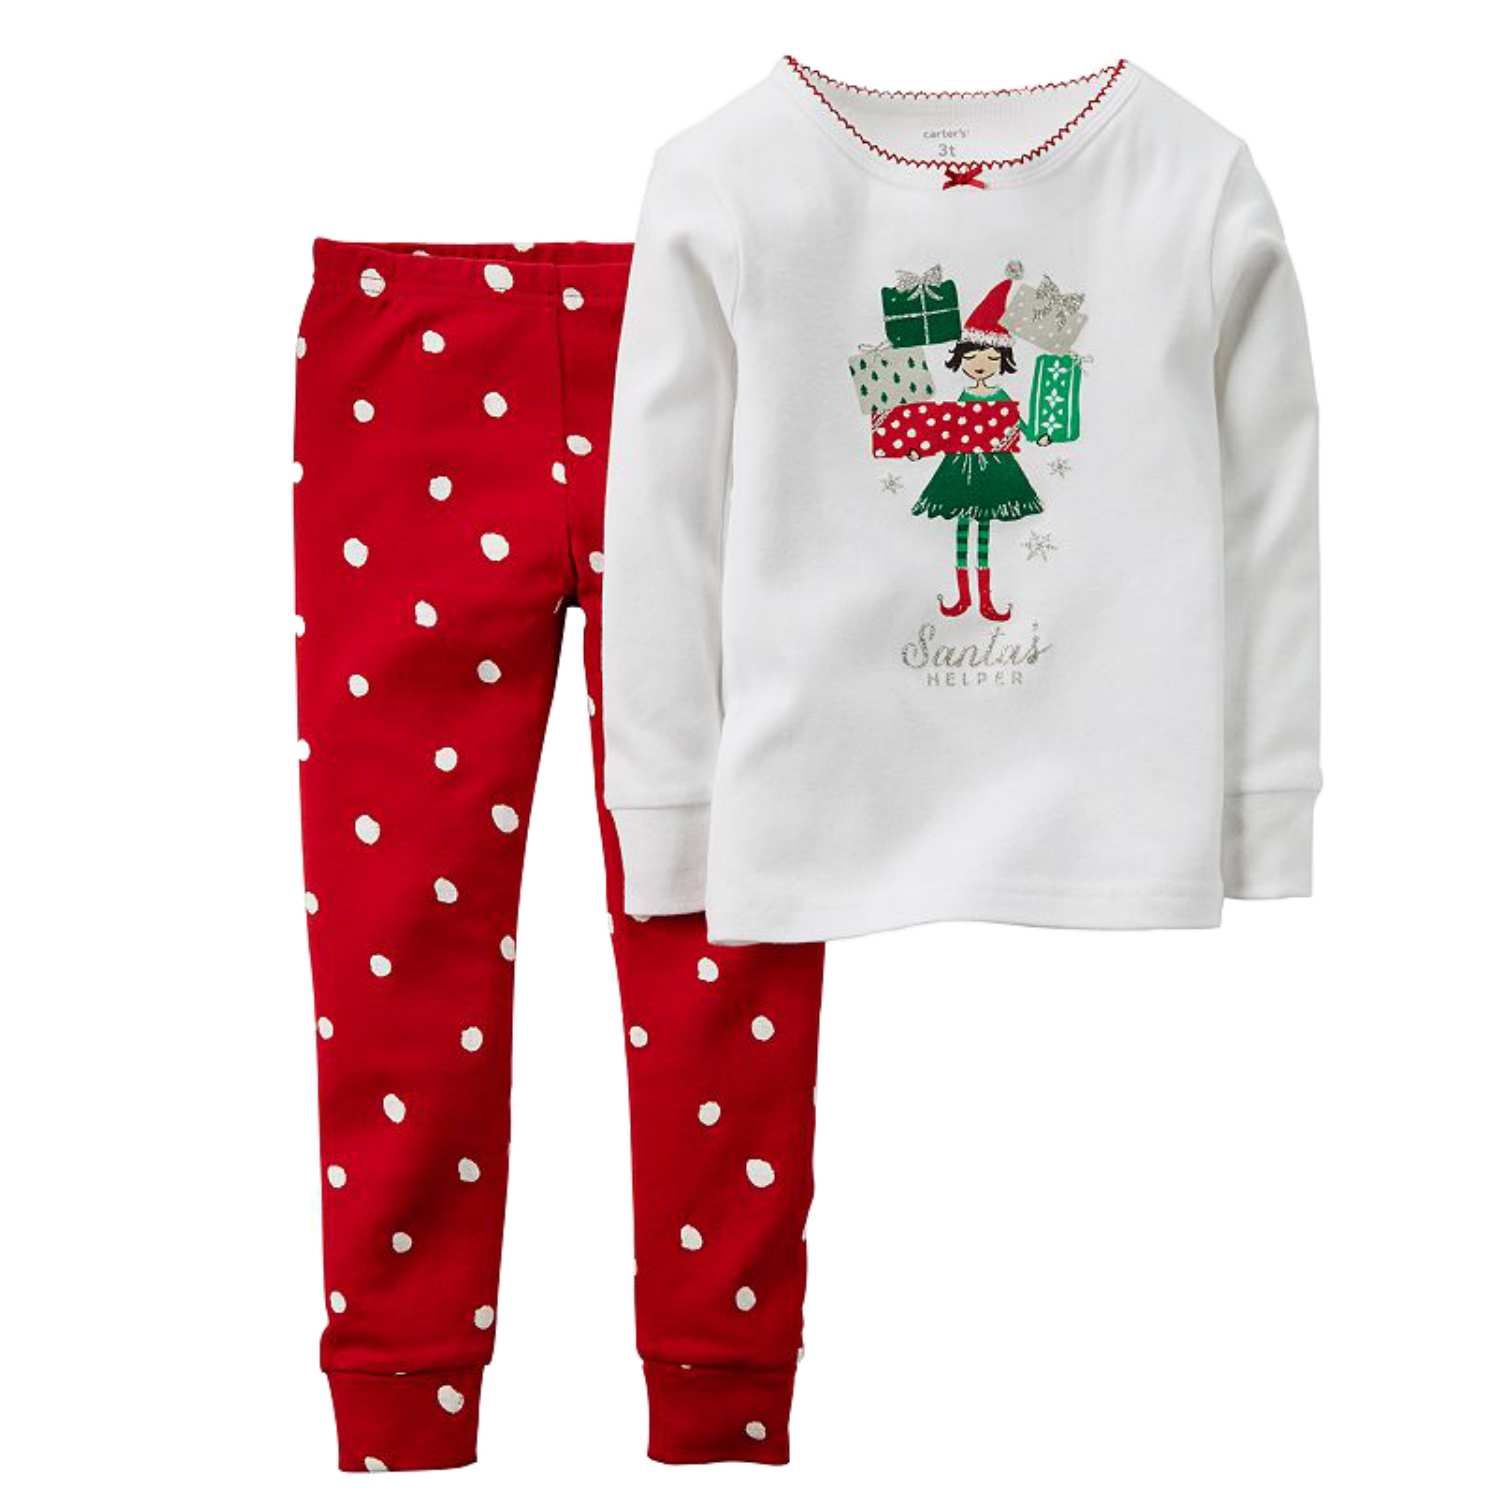 Carters Infant & Toddler Girls Santas Helper Elf Holiday Pajama 2 PC Sleep Set